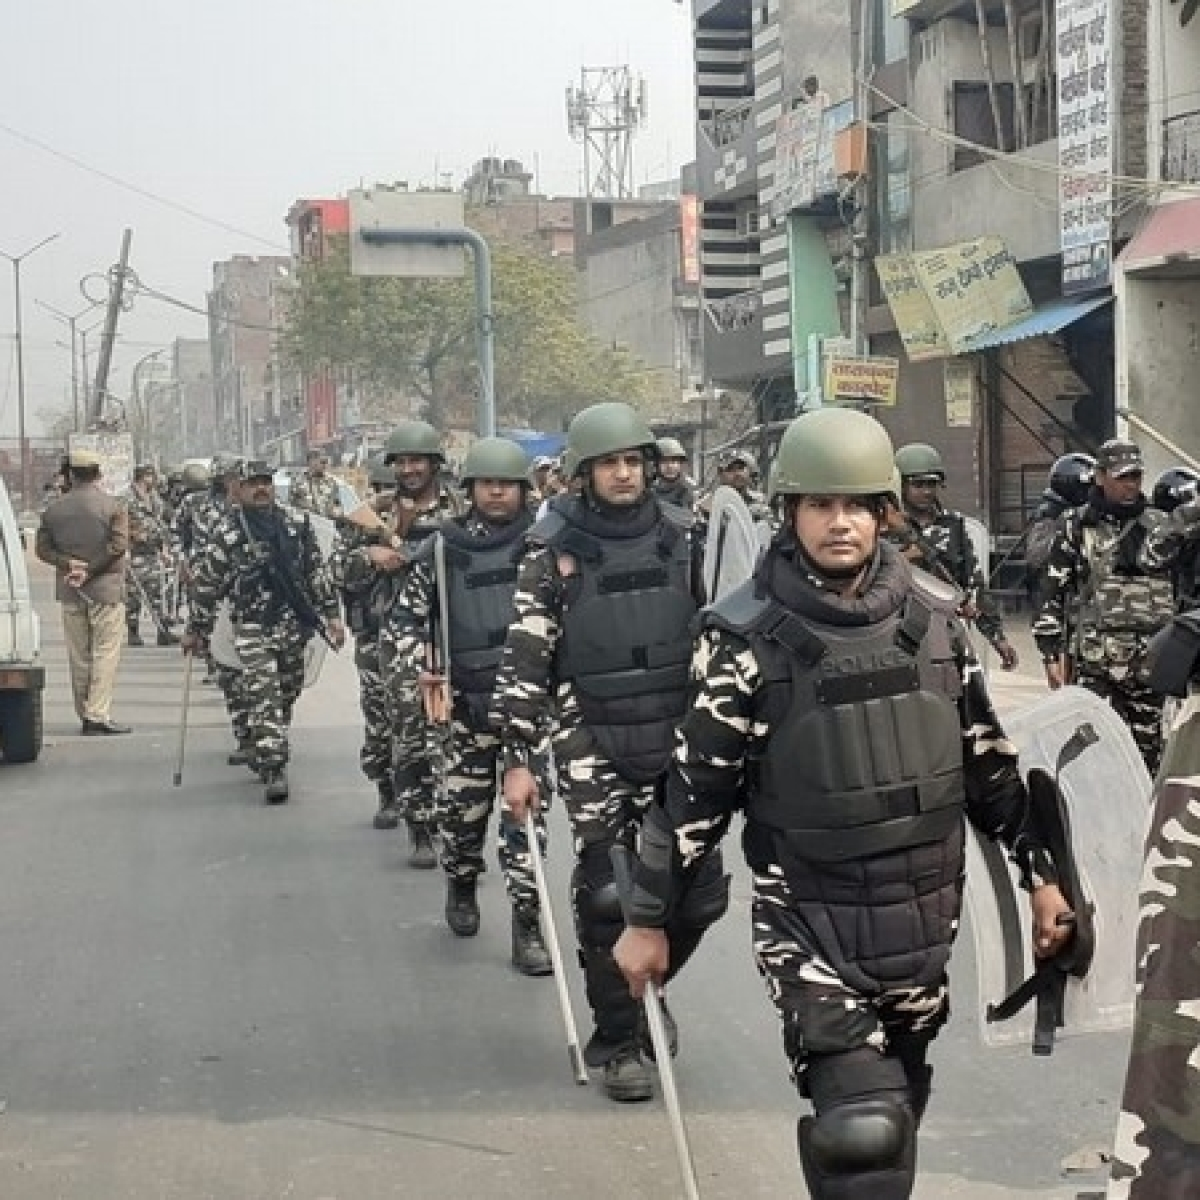 Delhi violence: Security personnel conduct flag march with riot gears and batons in Babarpur